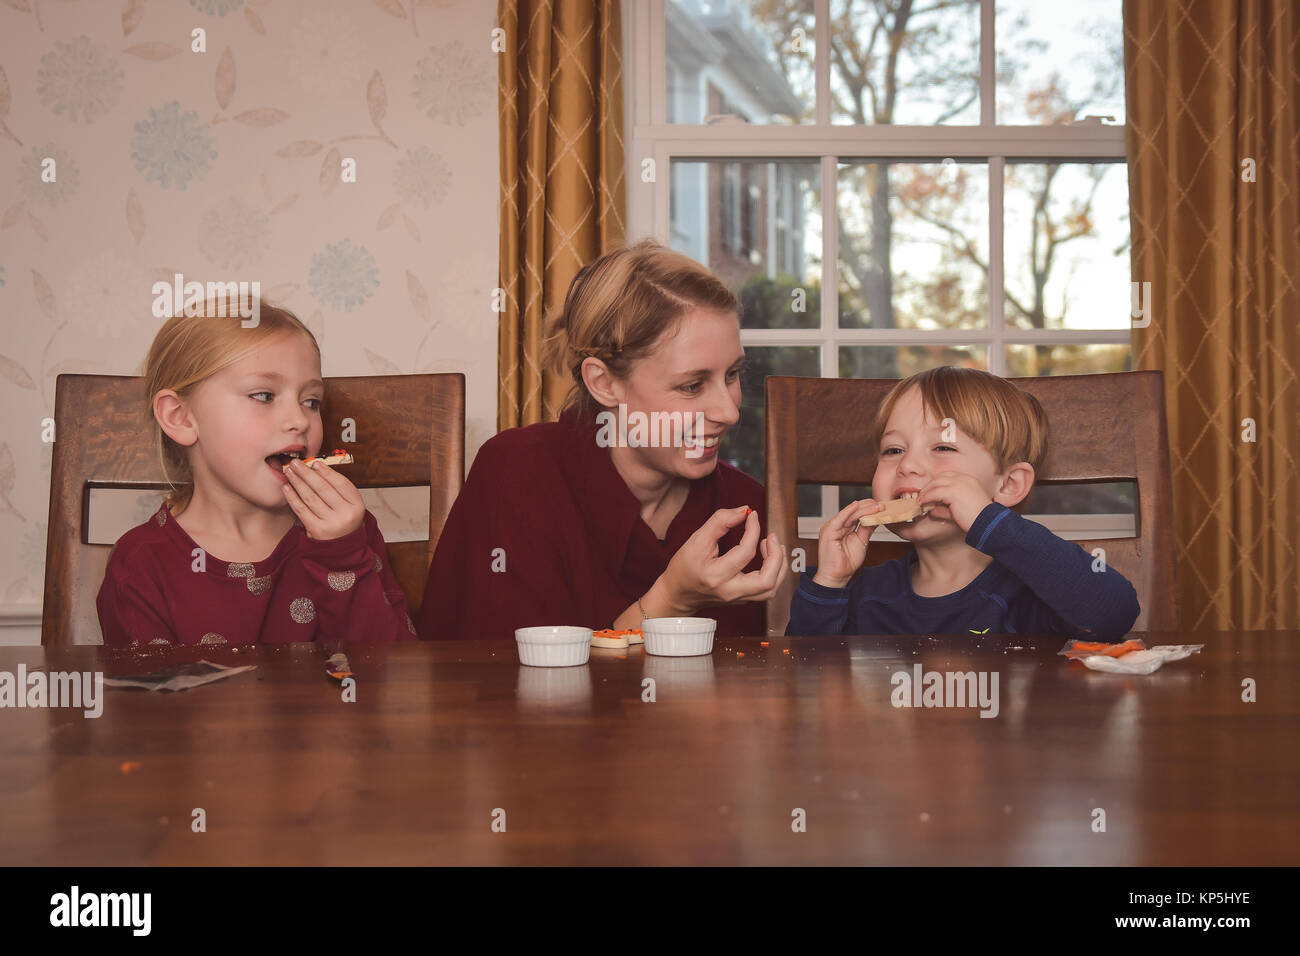 mother sitting with 2 children decorating cookies - Stock Image